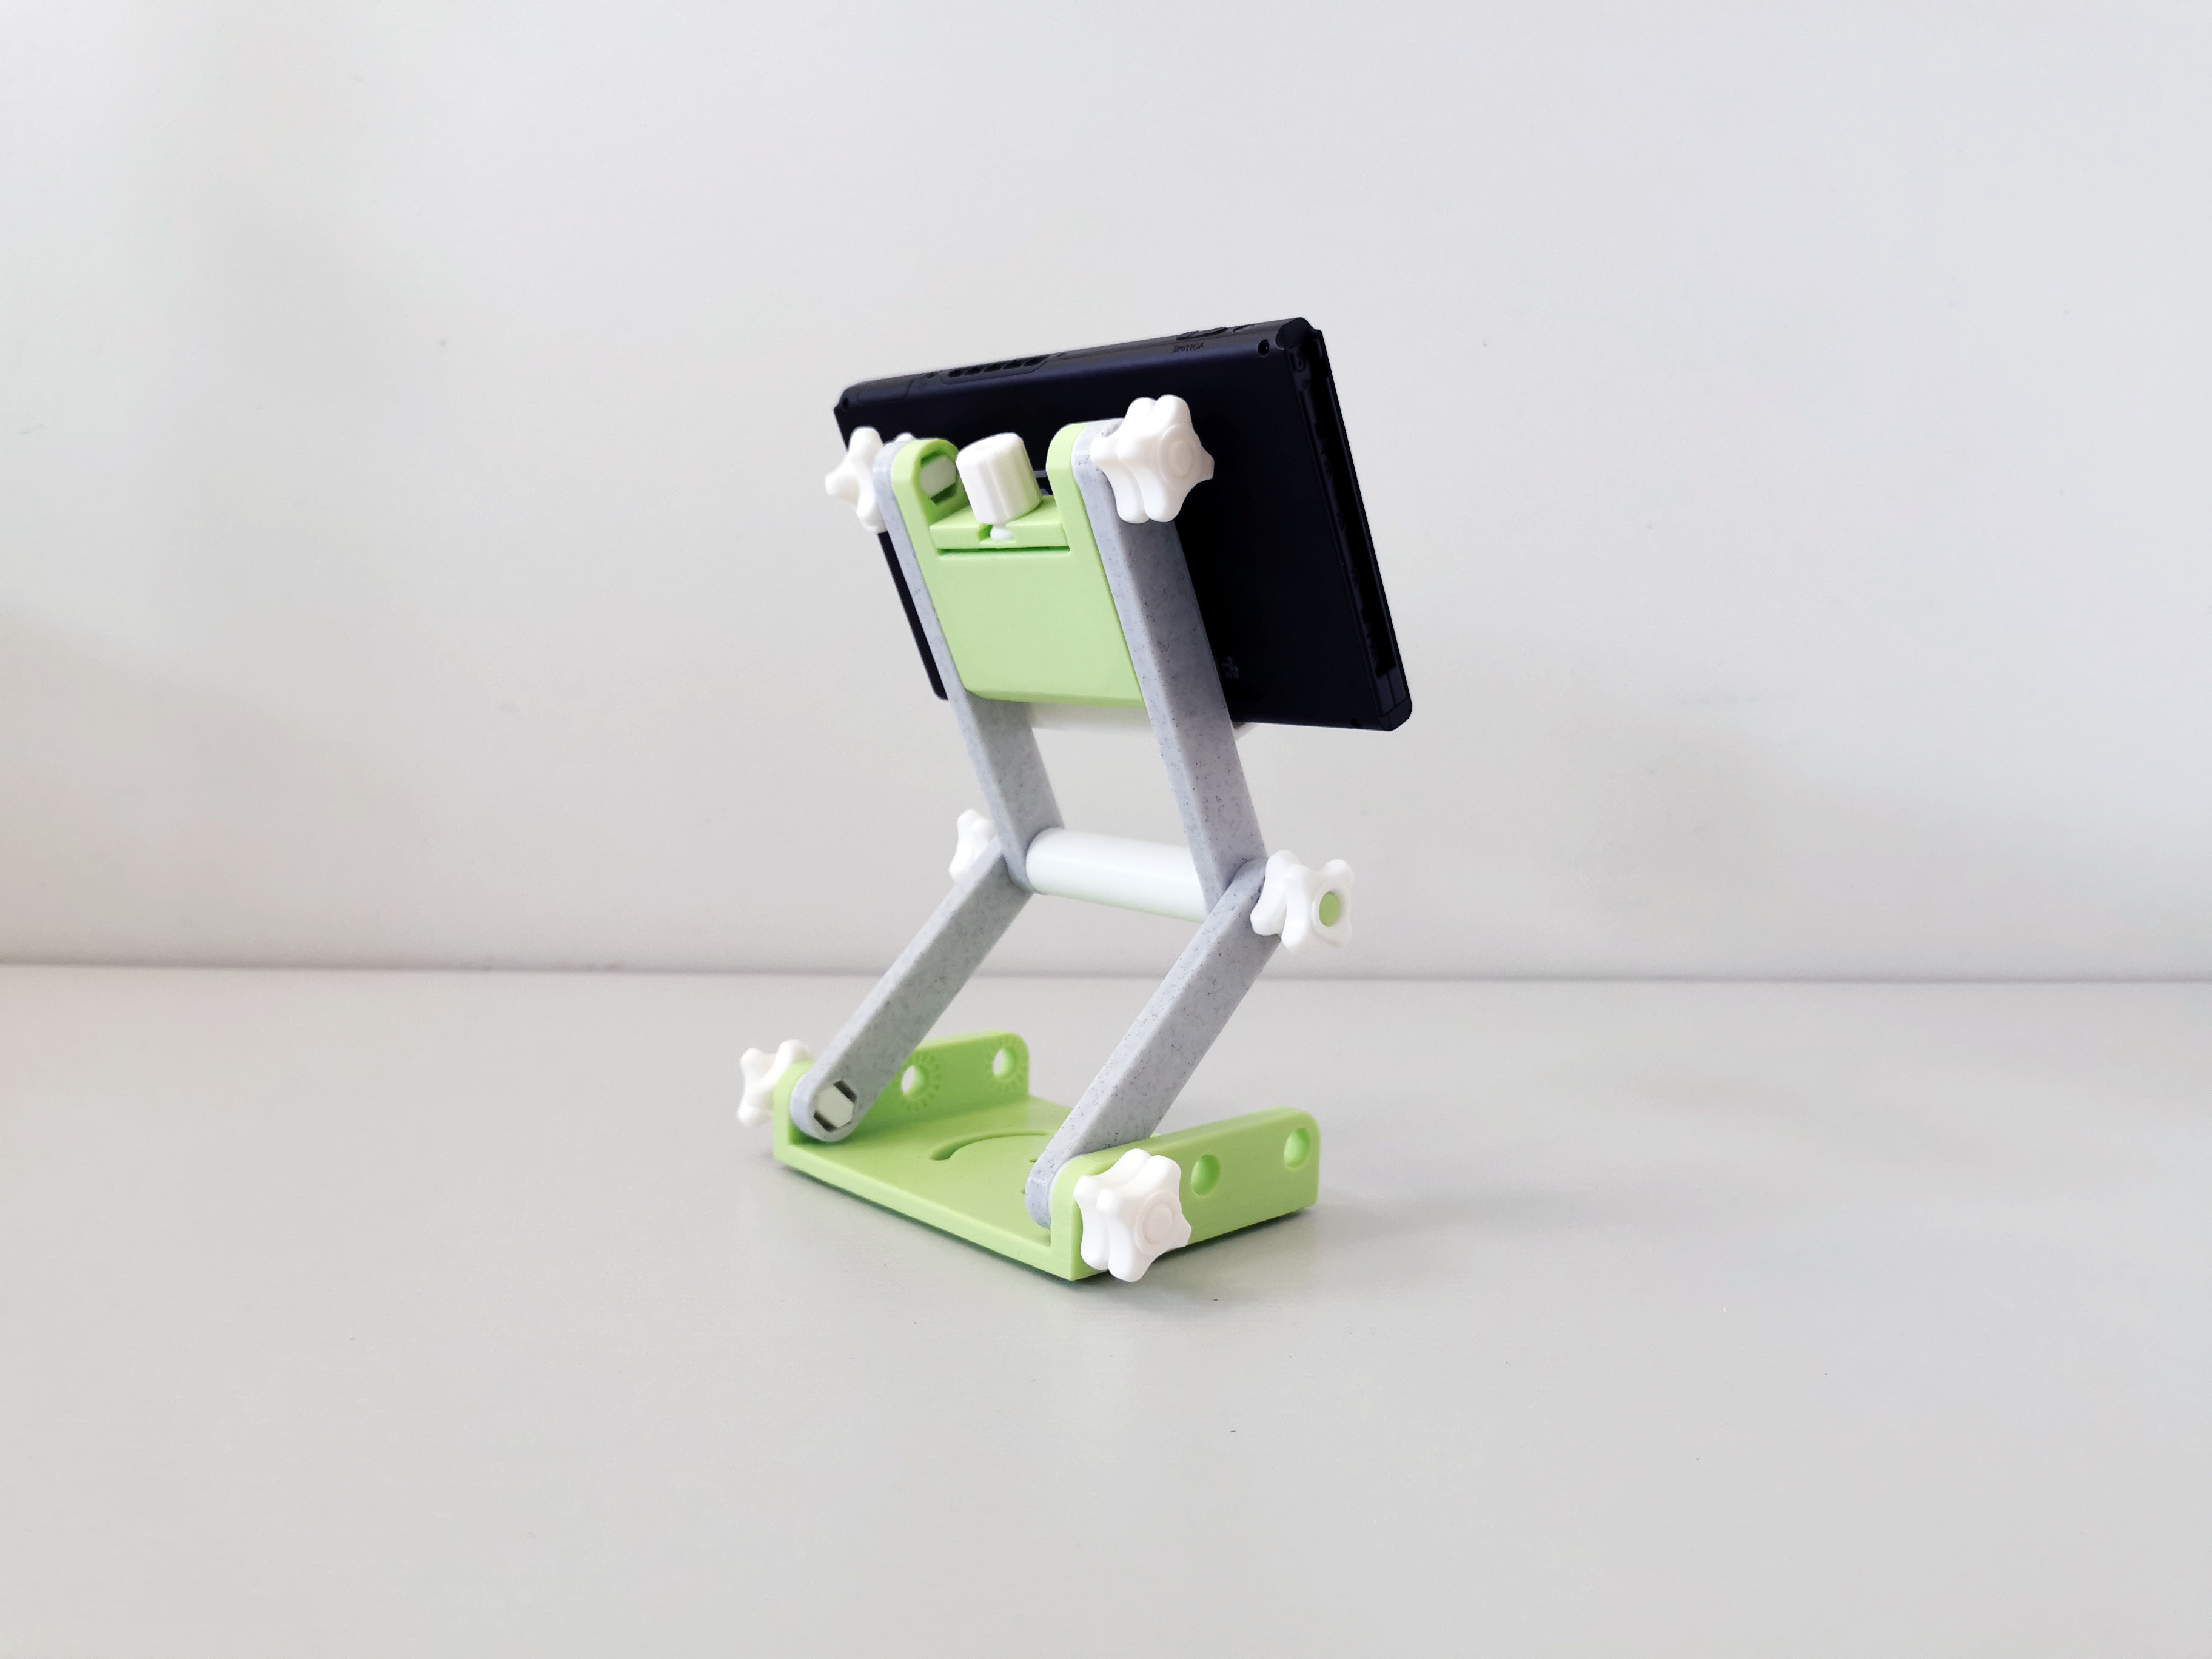 IMG_20201004_145331.jpg Download free STL file LiftPod - Multipurpose Foldable Stand • 3D printing design, HeyVye